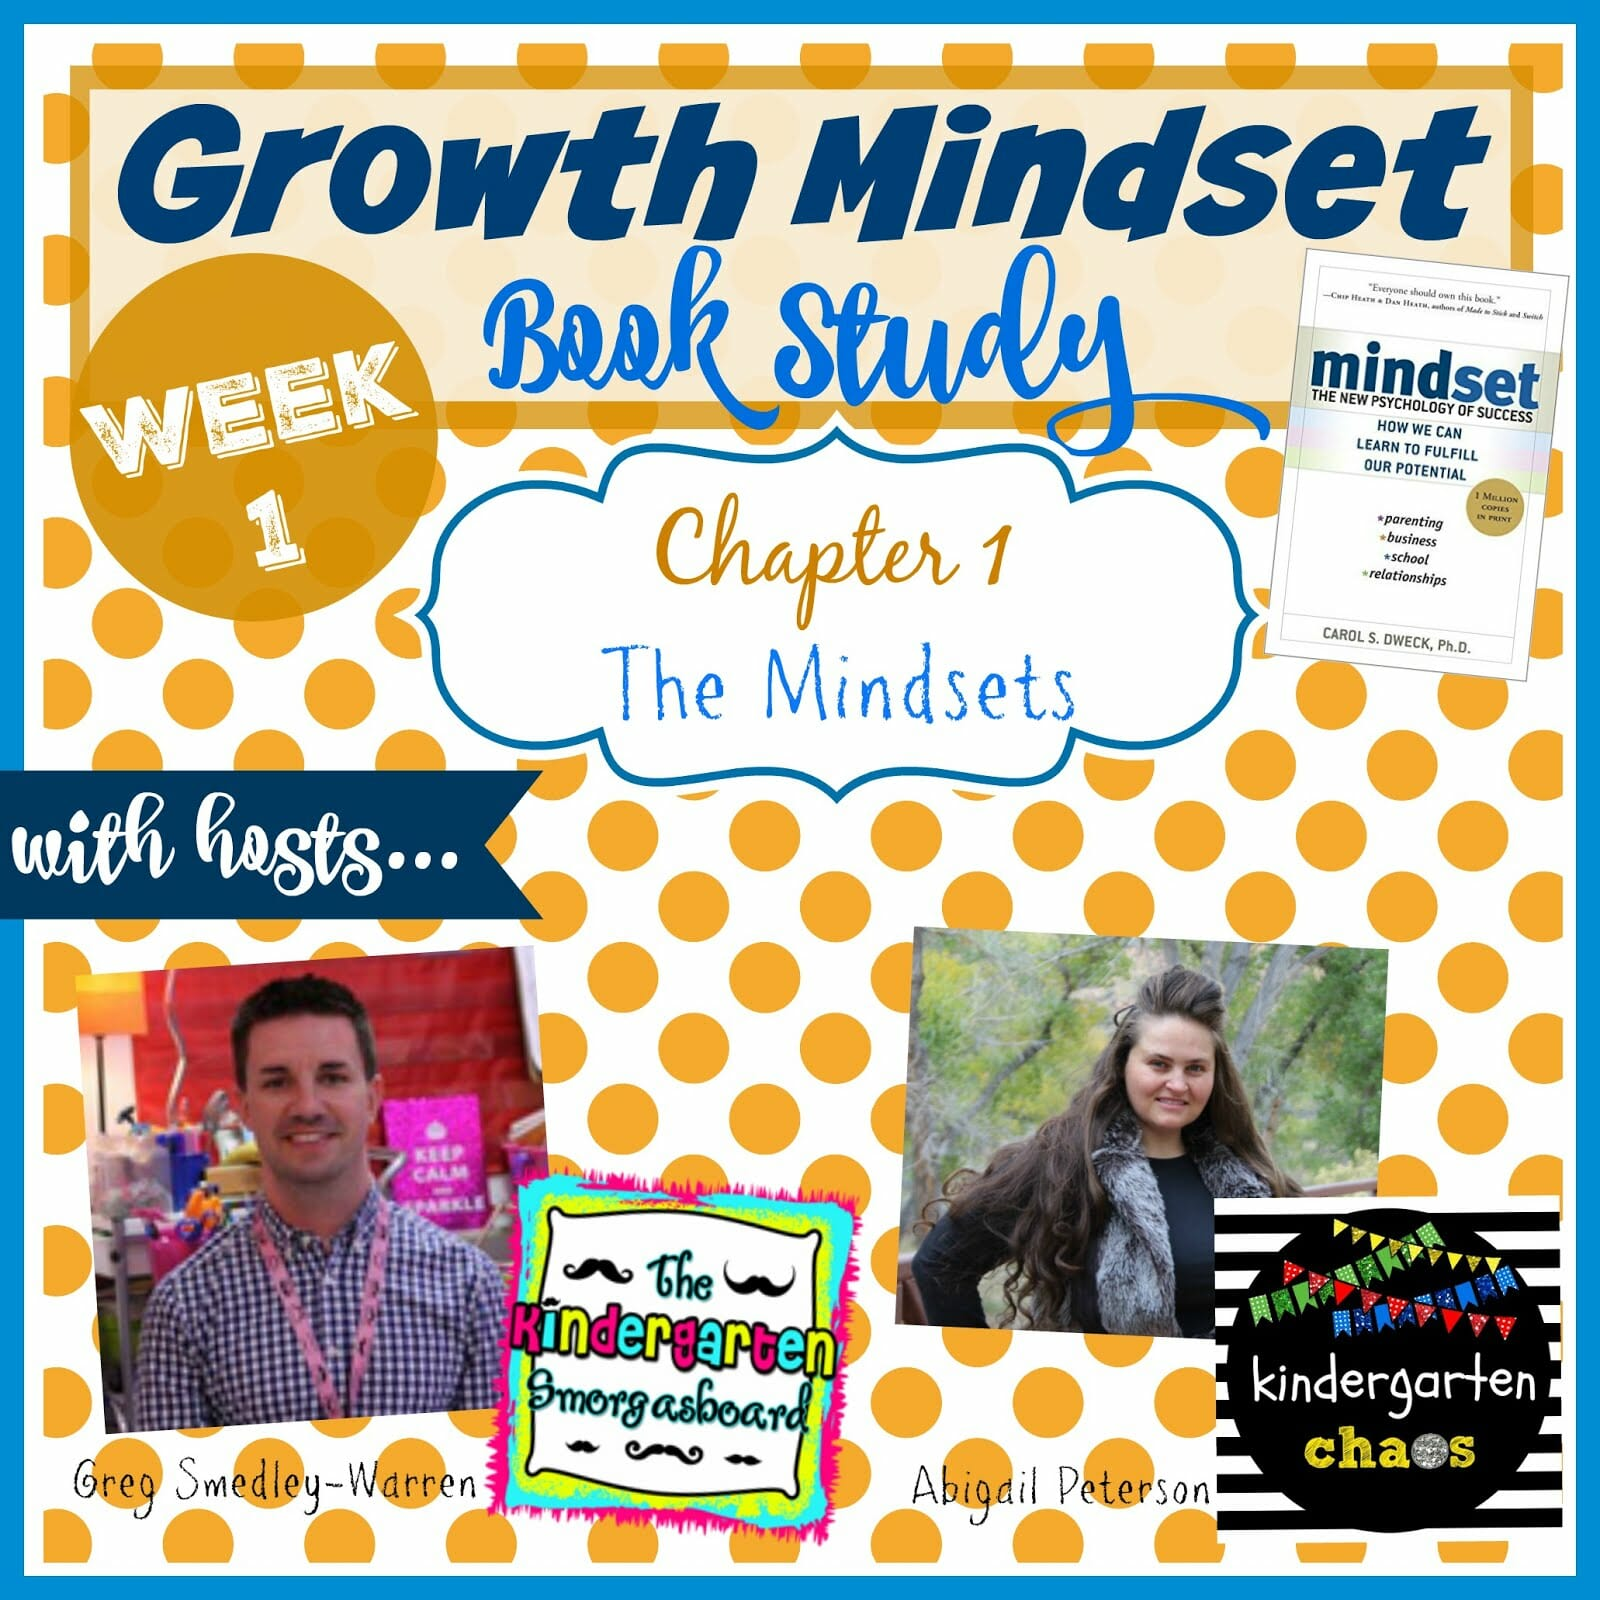 Summer Book Study Growth Mindset Chapter 1